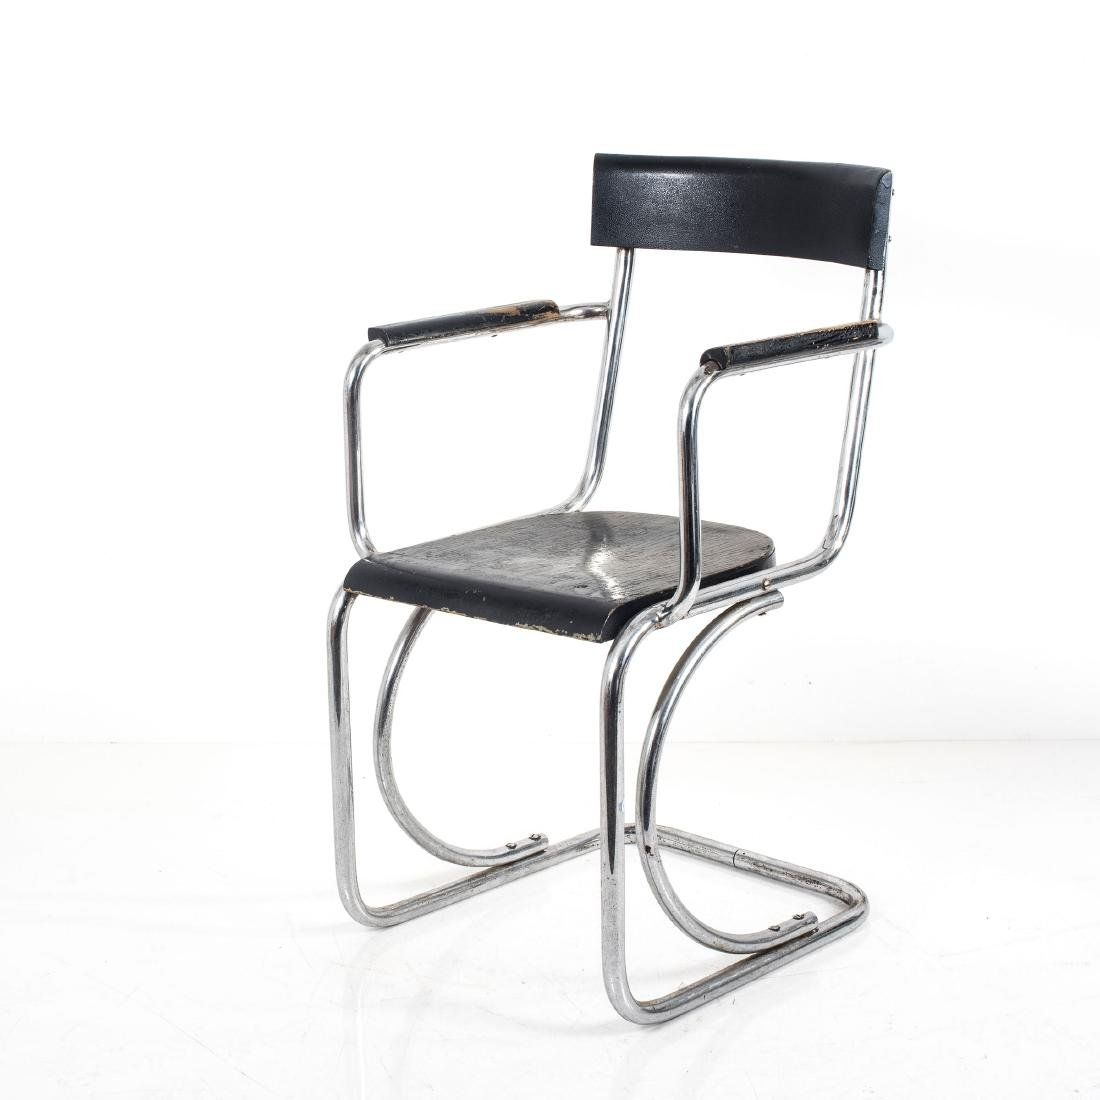 Cantilever chair, 1930/31 - 4